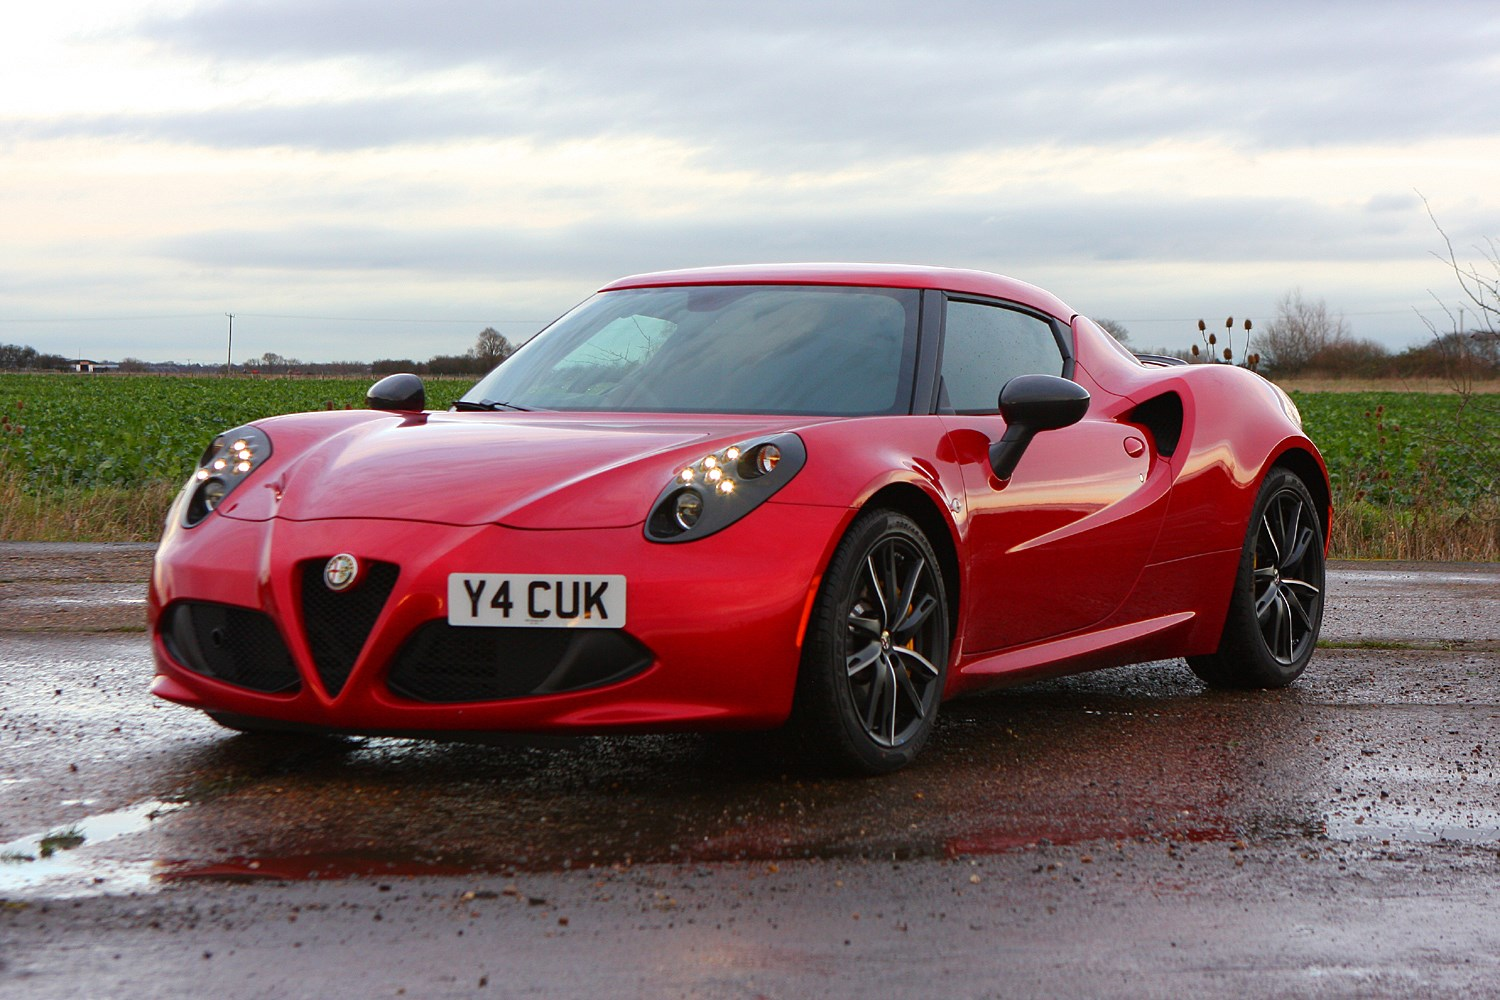 alfa romeo 4c coupe 2013 buying and selling parkers. Black Bedroom Furniture Sets. Home Design Ideas